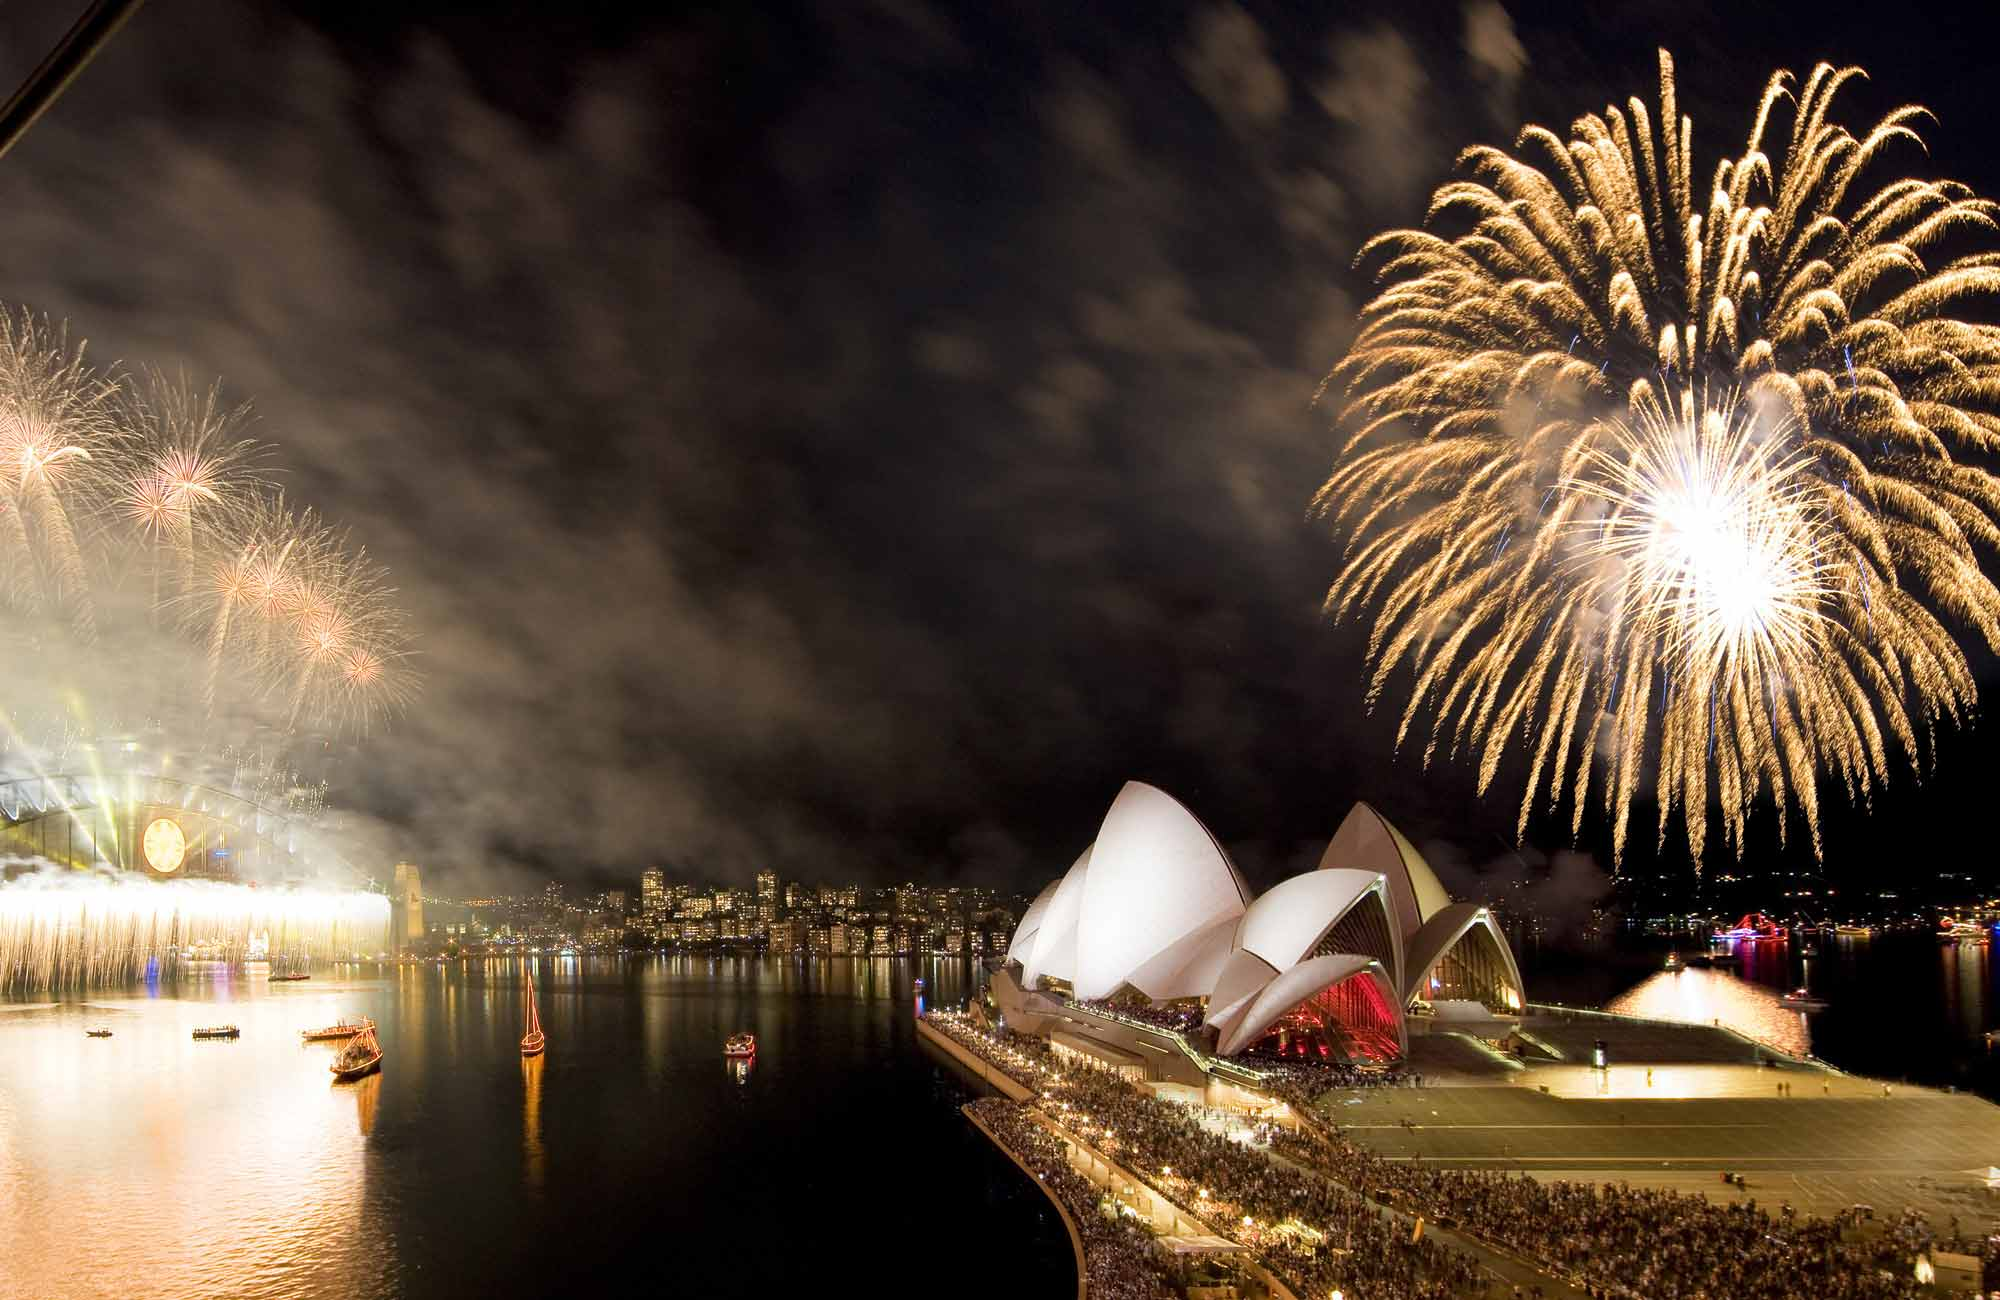 Fireworks on Sydney Harbour. Photo: Hamilton Lund/Destination NSW